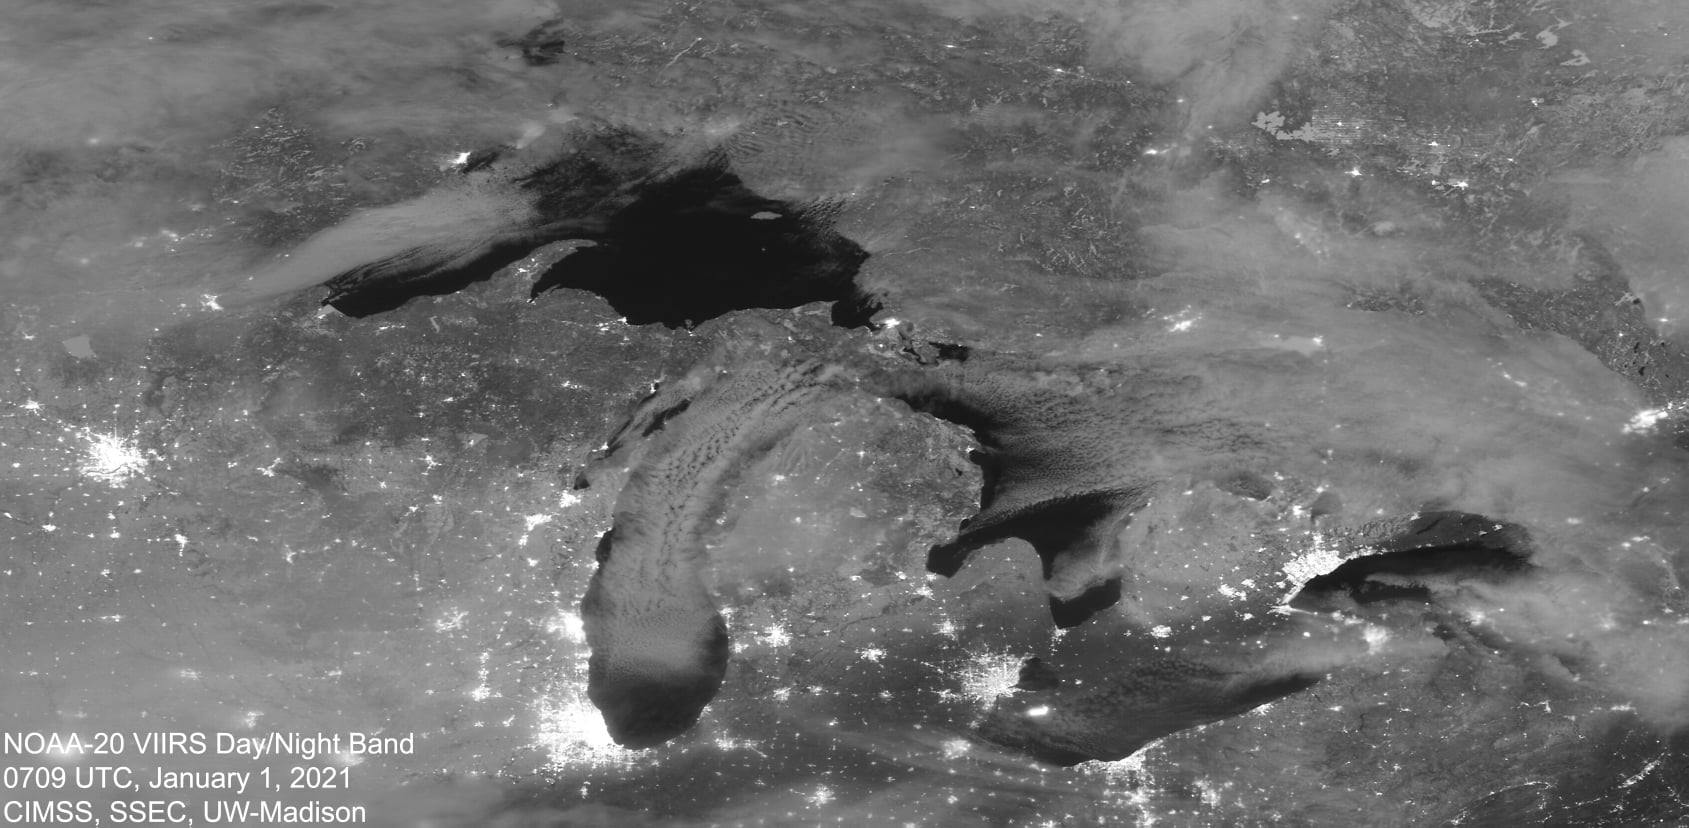 Michigan Lights up the New Year by Cooperative Institute for Meteorological Satellite Studies (CIMSS) UW-Madison